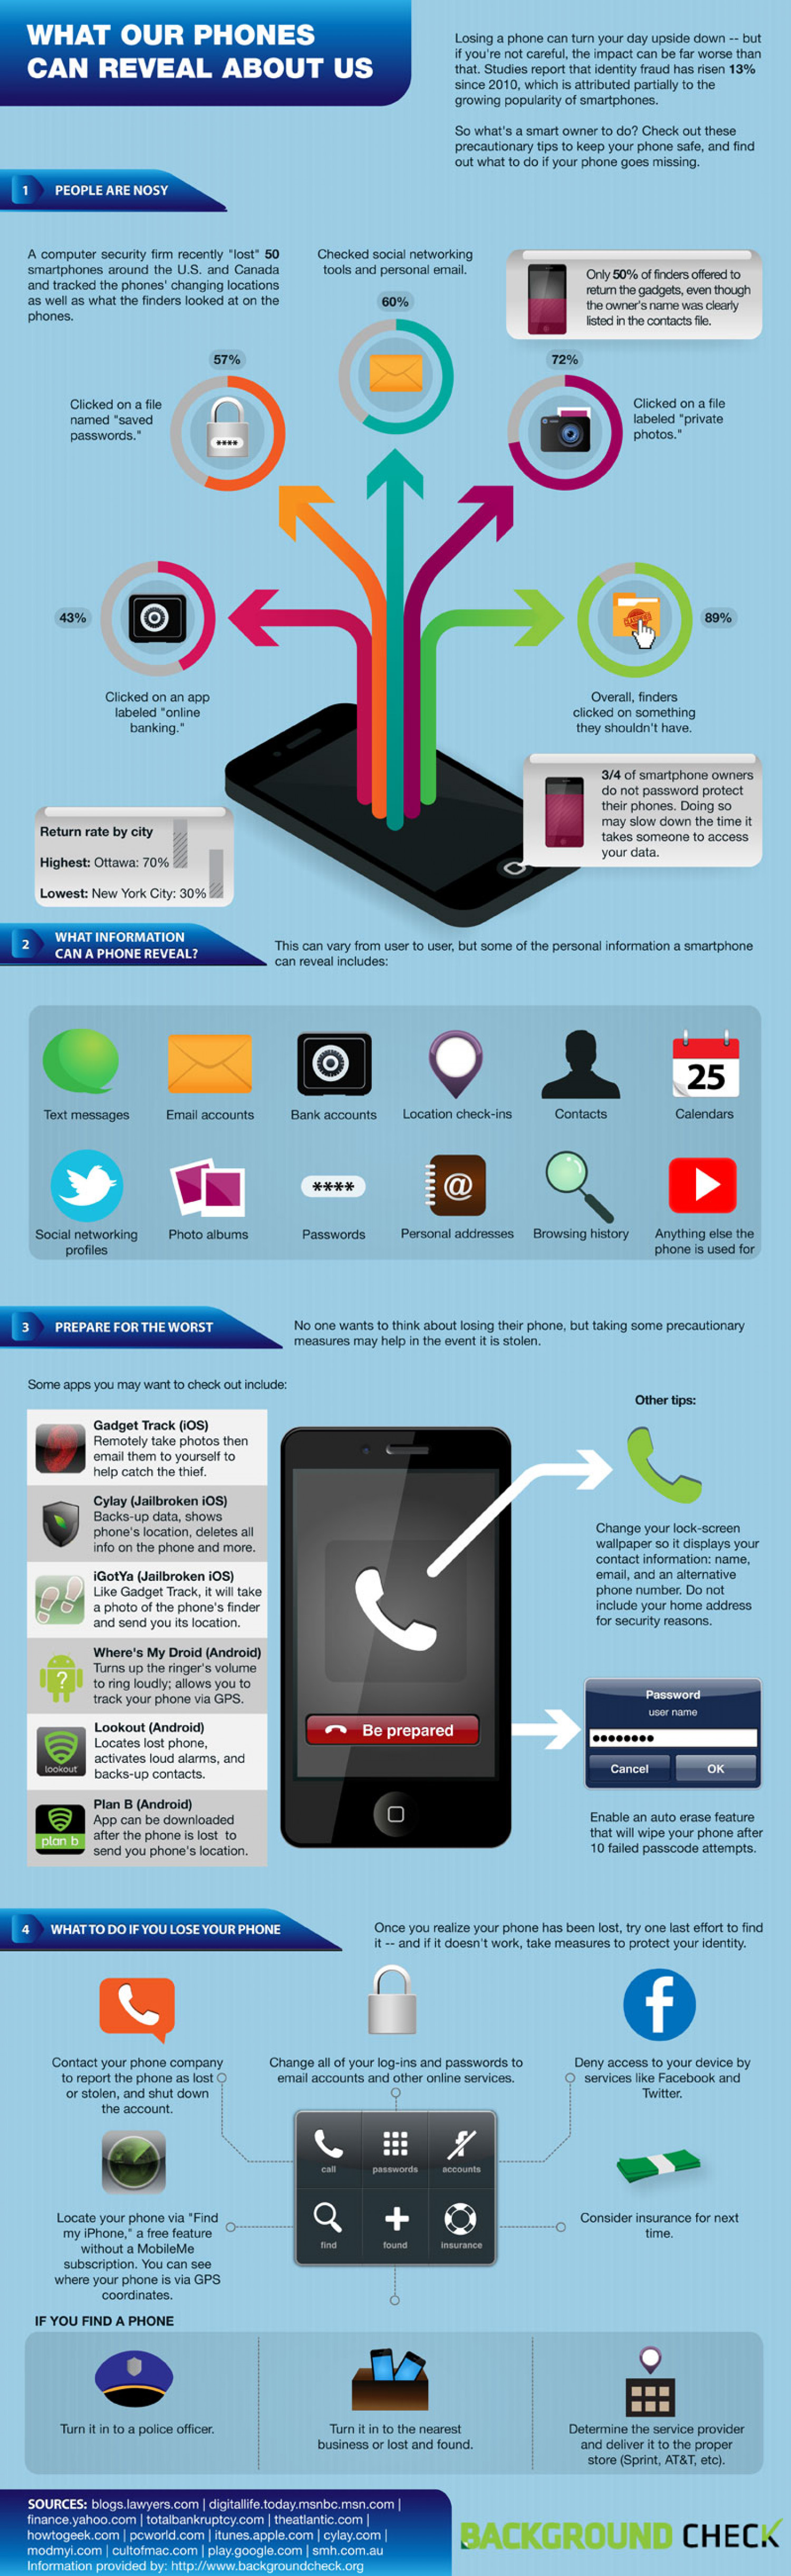 What Our Phones Can Reveal About Us Infographic